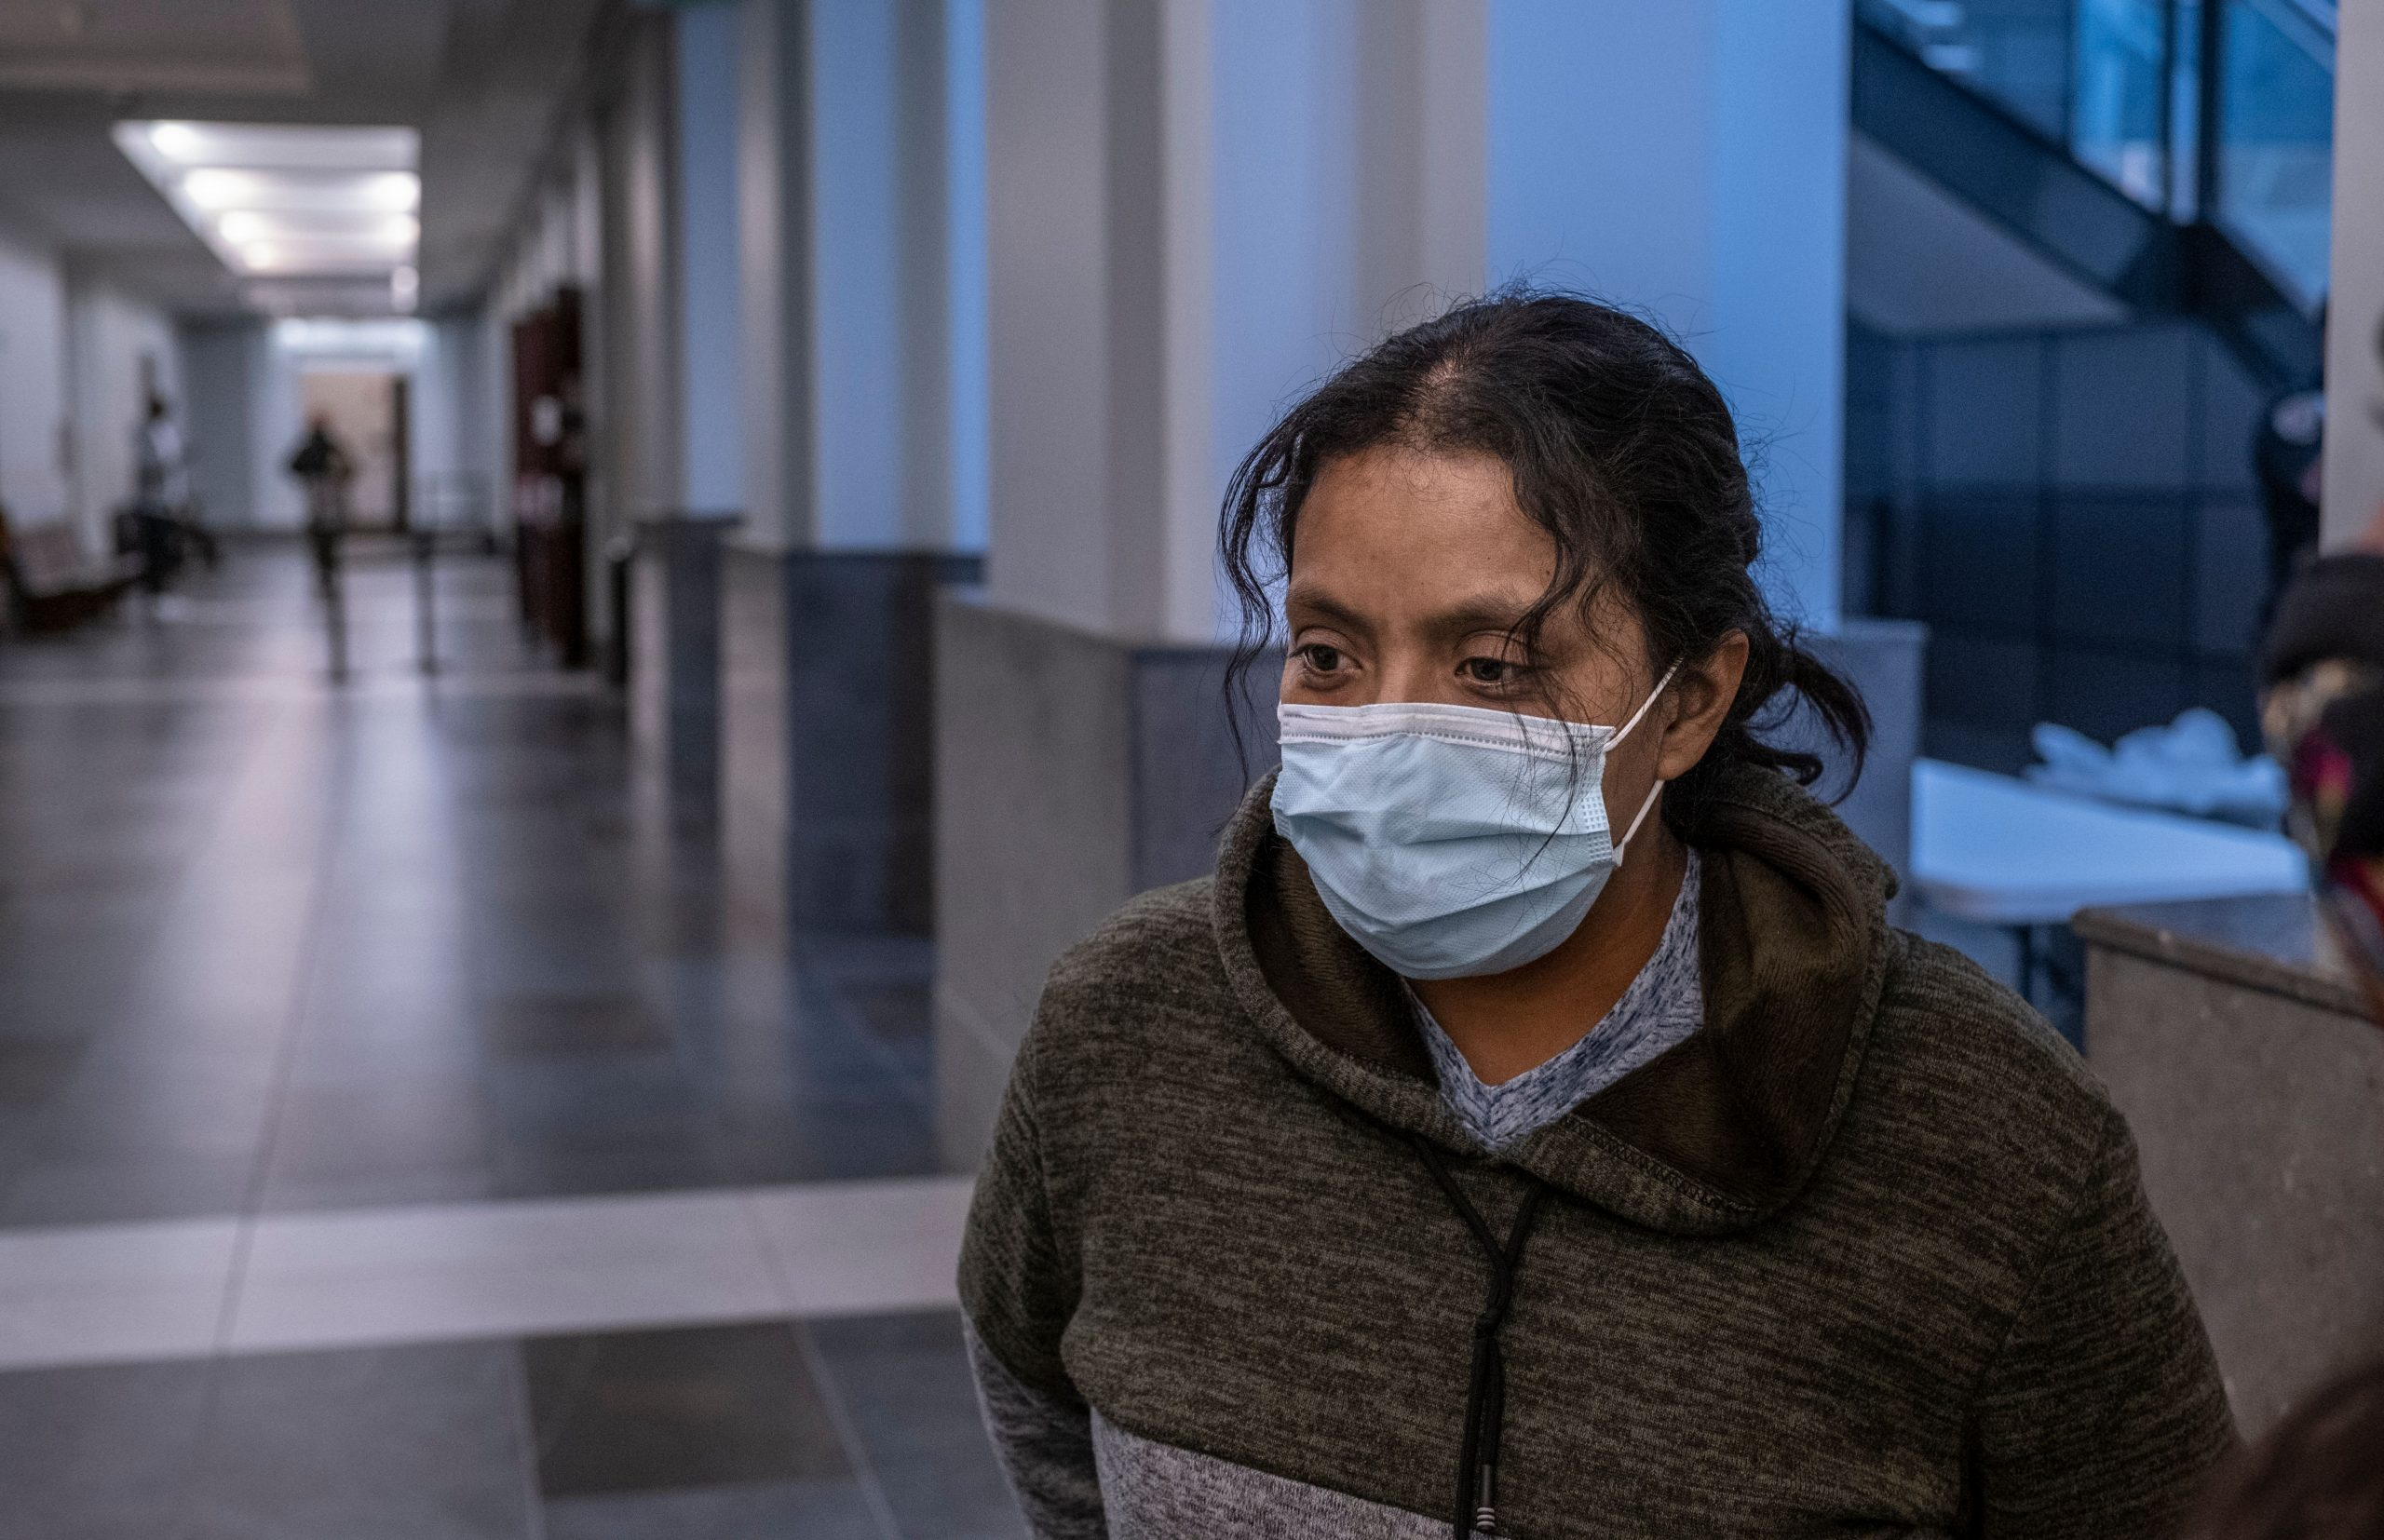 Maria Hernandez awaits a decision on her eviction case. Hernandez is one of thousands of Tennesseans who face eviction after a federal moratorium ends Jan. 31, 2021. (Photo: John Partipilo)